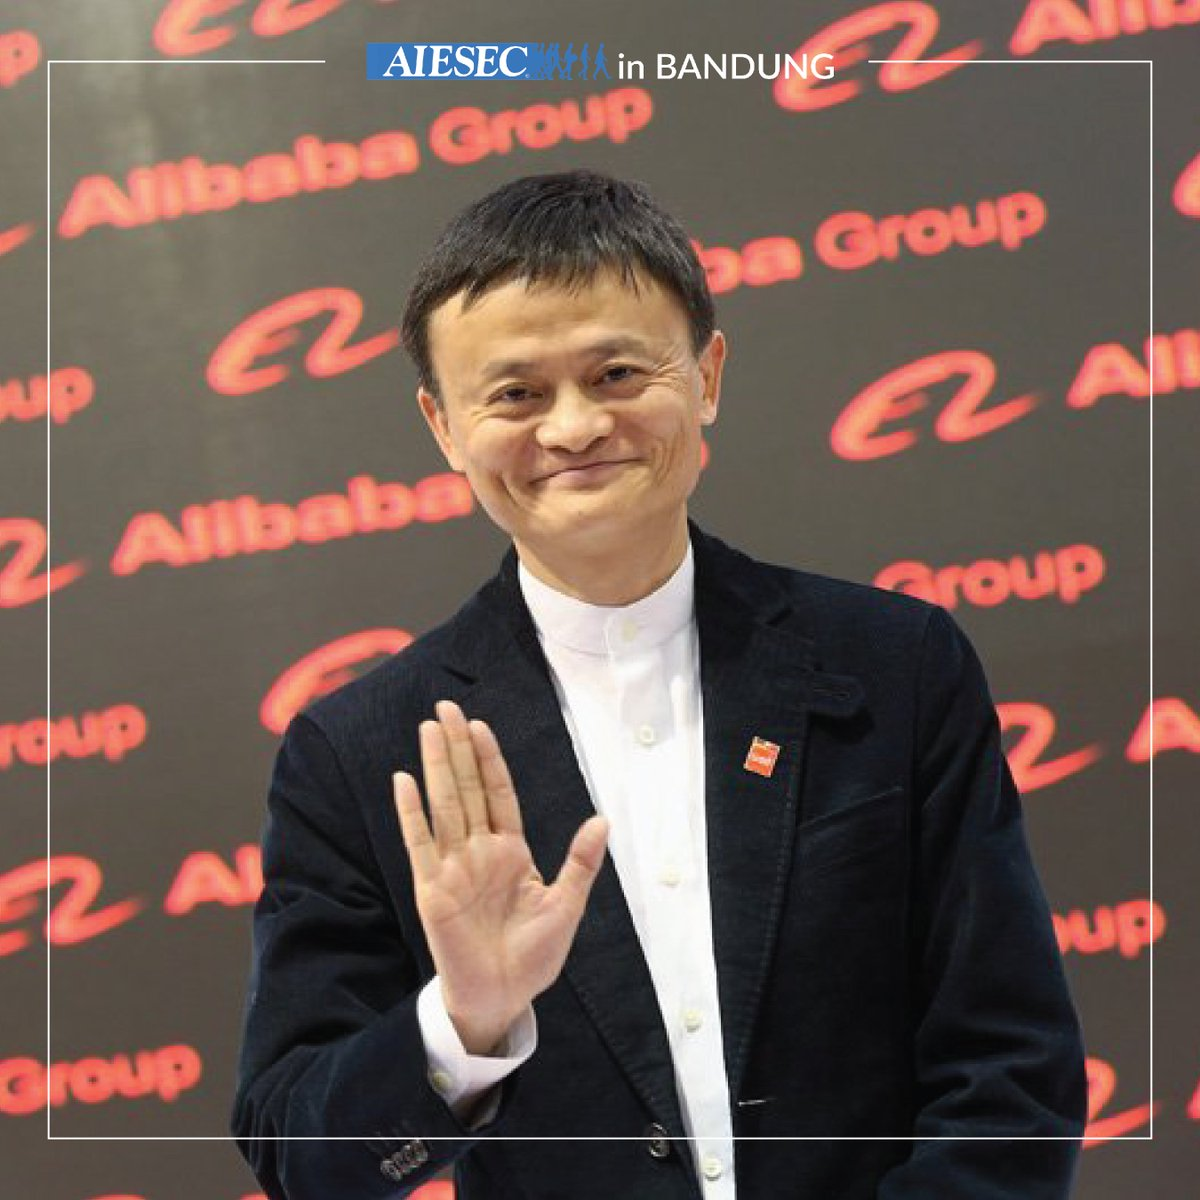 Jack Ma, is a Chinese business magnate who is the founder and executive chairman of Alibaba Group. https://t.co/T05J9Iaqr2